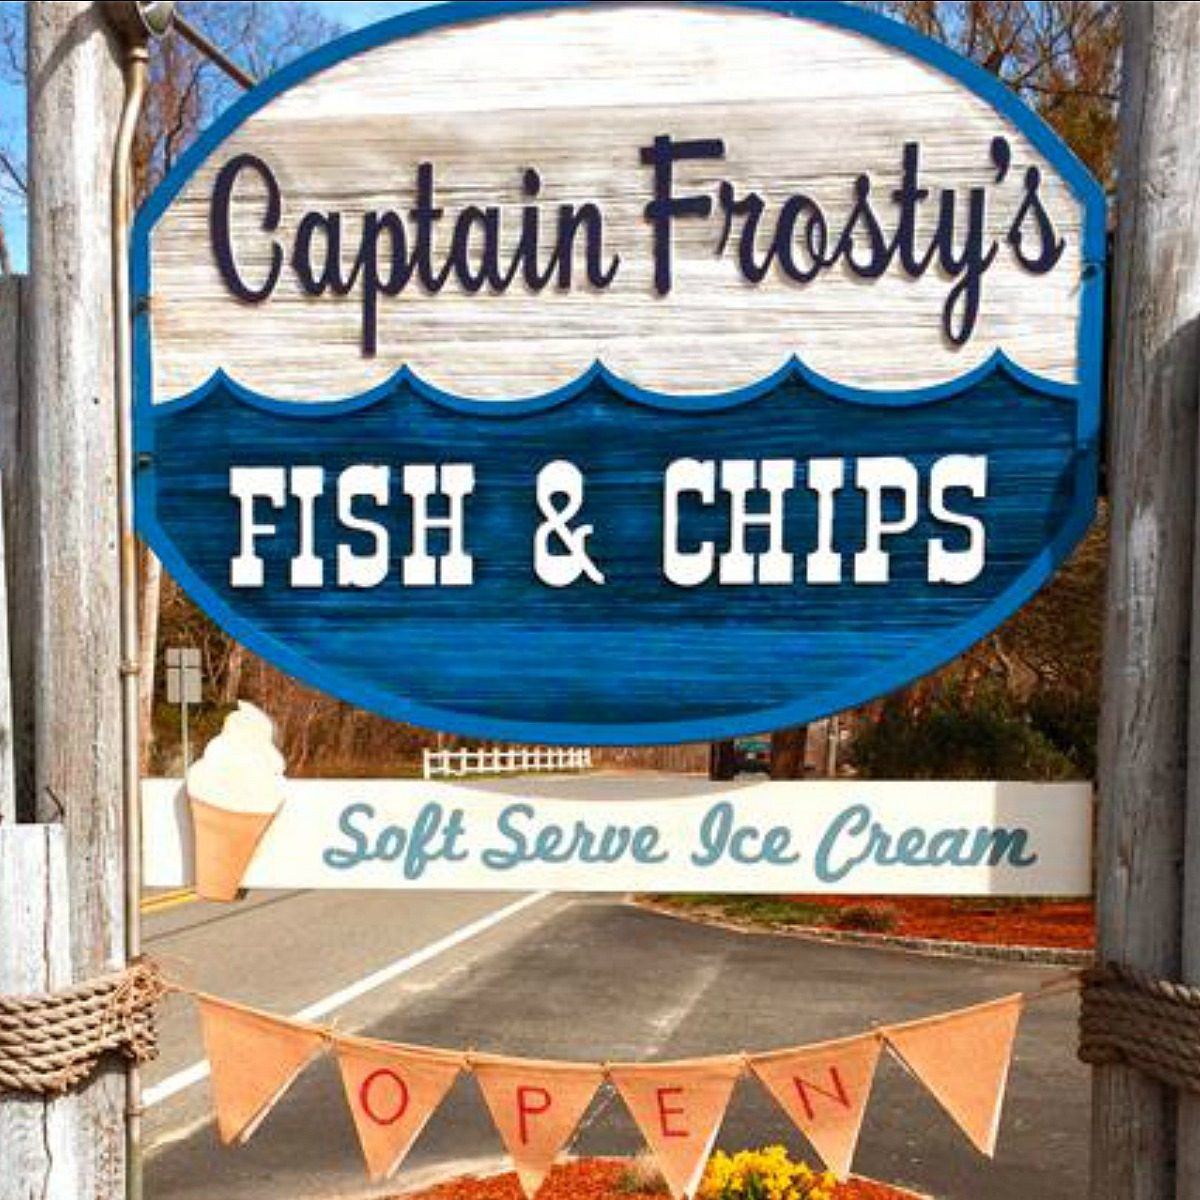 Sign outside Captain Frosty's Fish & Chips